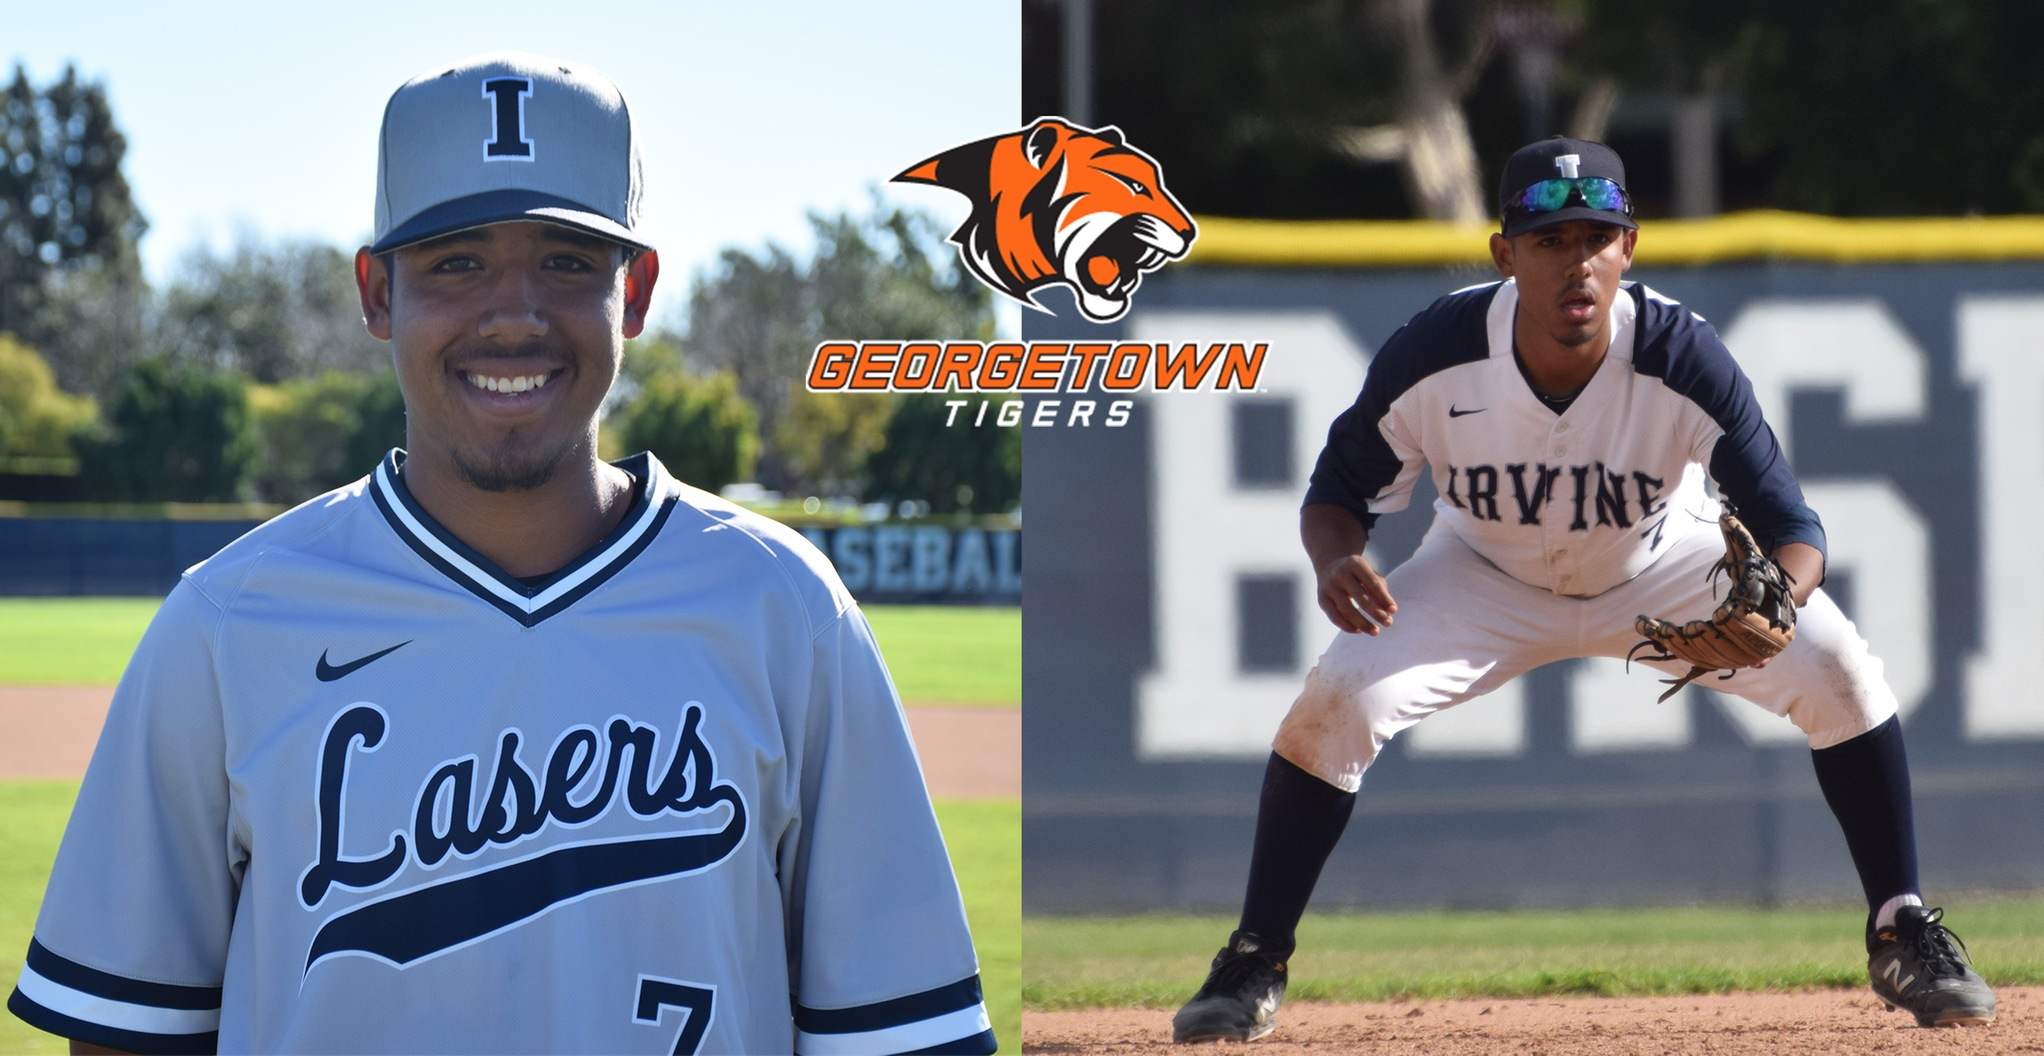 Baseball player David Rojas headed to Georgetown